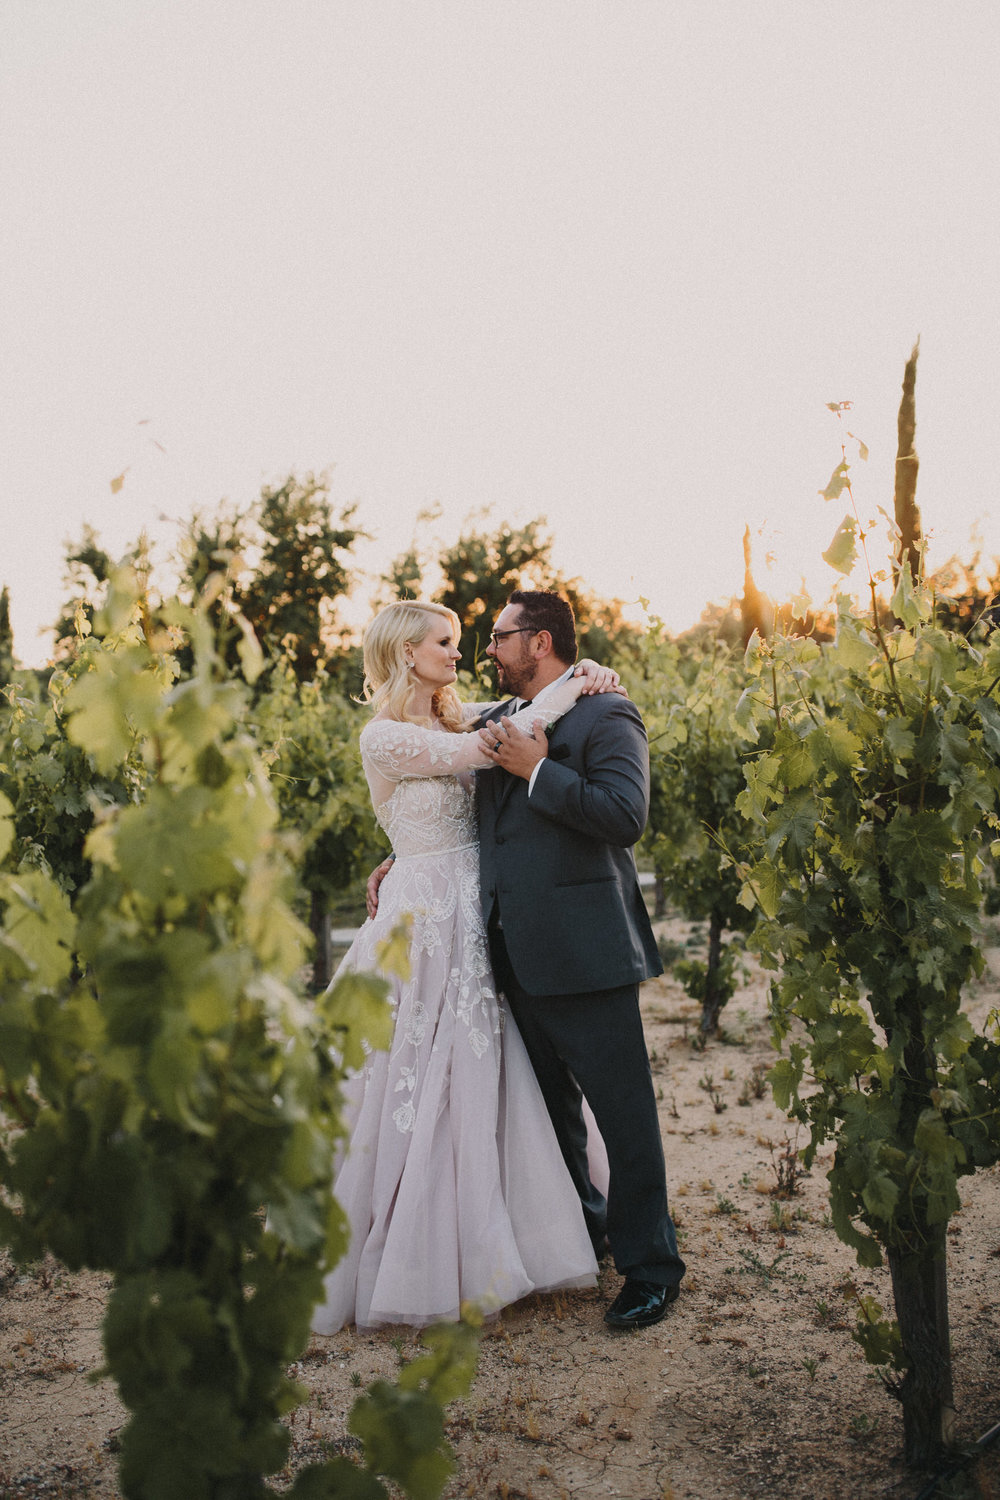 Stephanie + Charles - Mount Palomar Winery Wedding-34.jpg